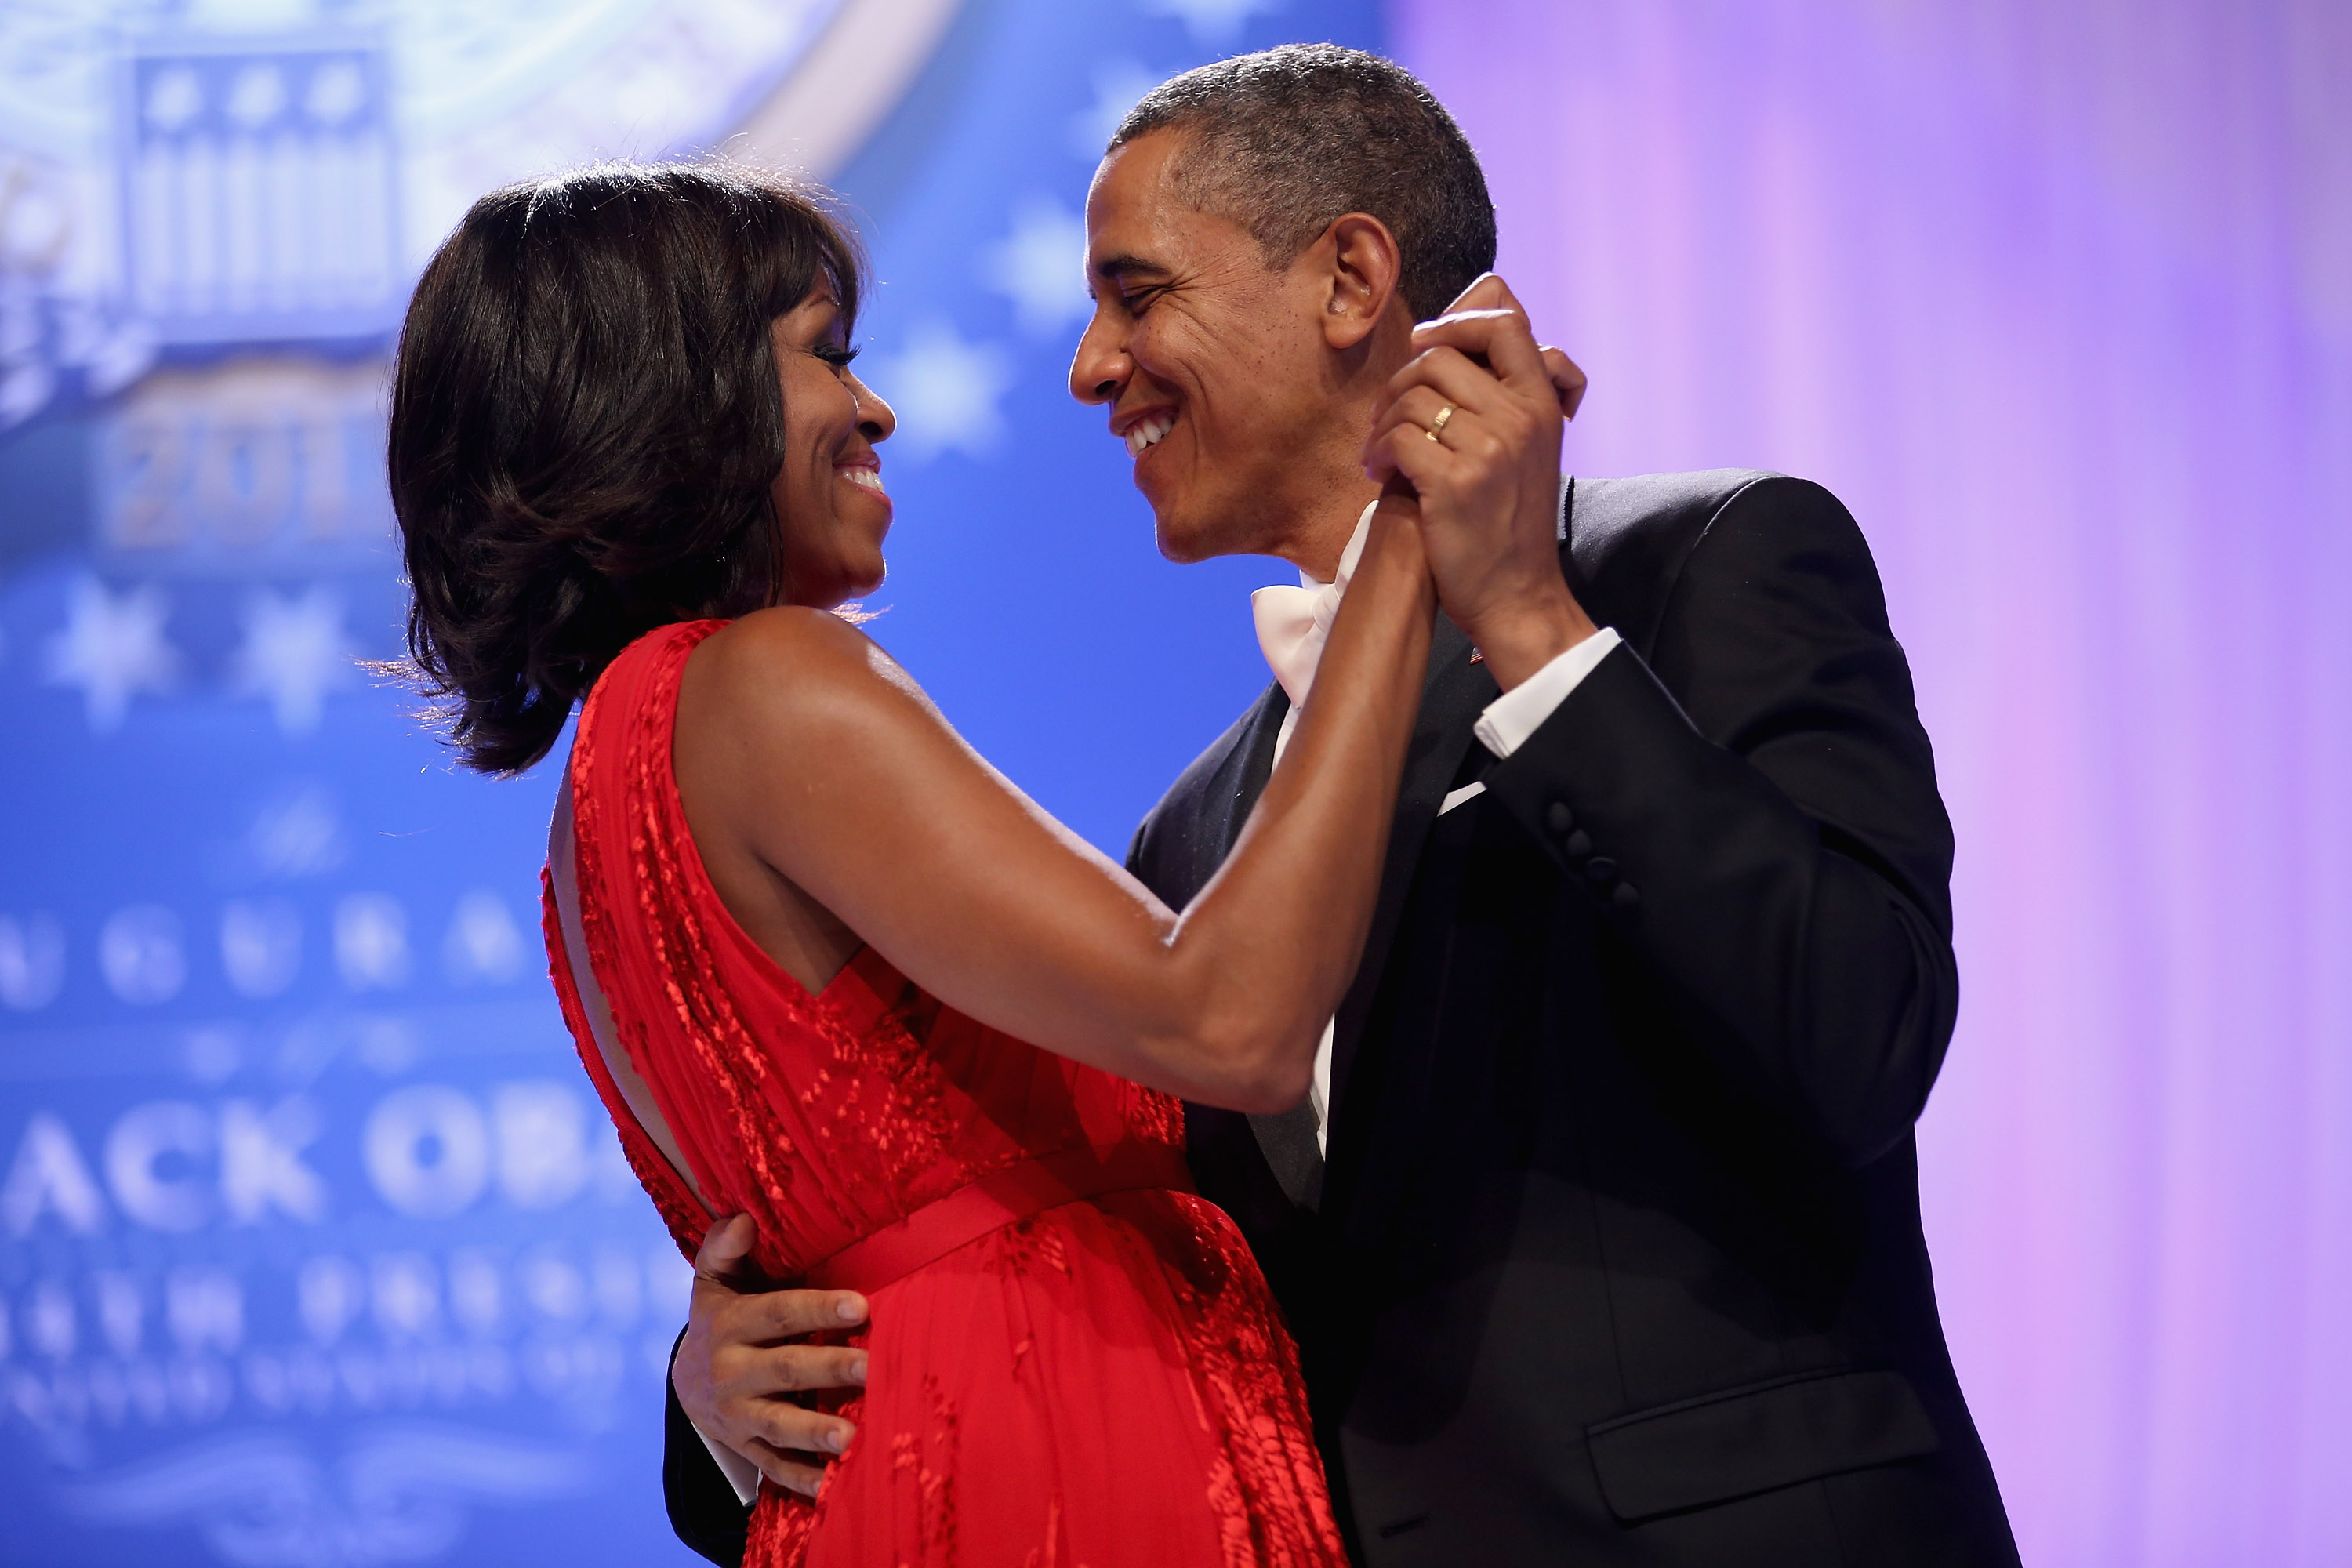 U.S. President Barack Obama and first lady Michelle Obama dance together during the Commander-in-Chief's Inaugural Ball at the Walter Washington Convention Center January 21, 2013, in Washington, DC. (Getty Images)